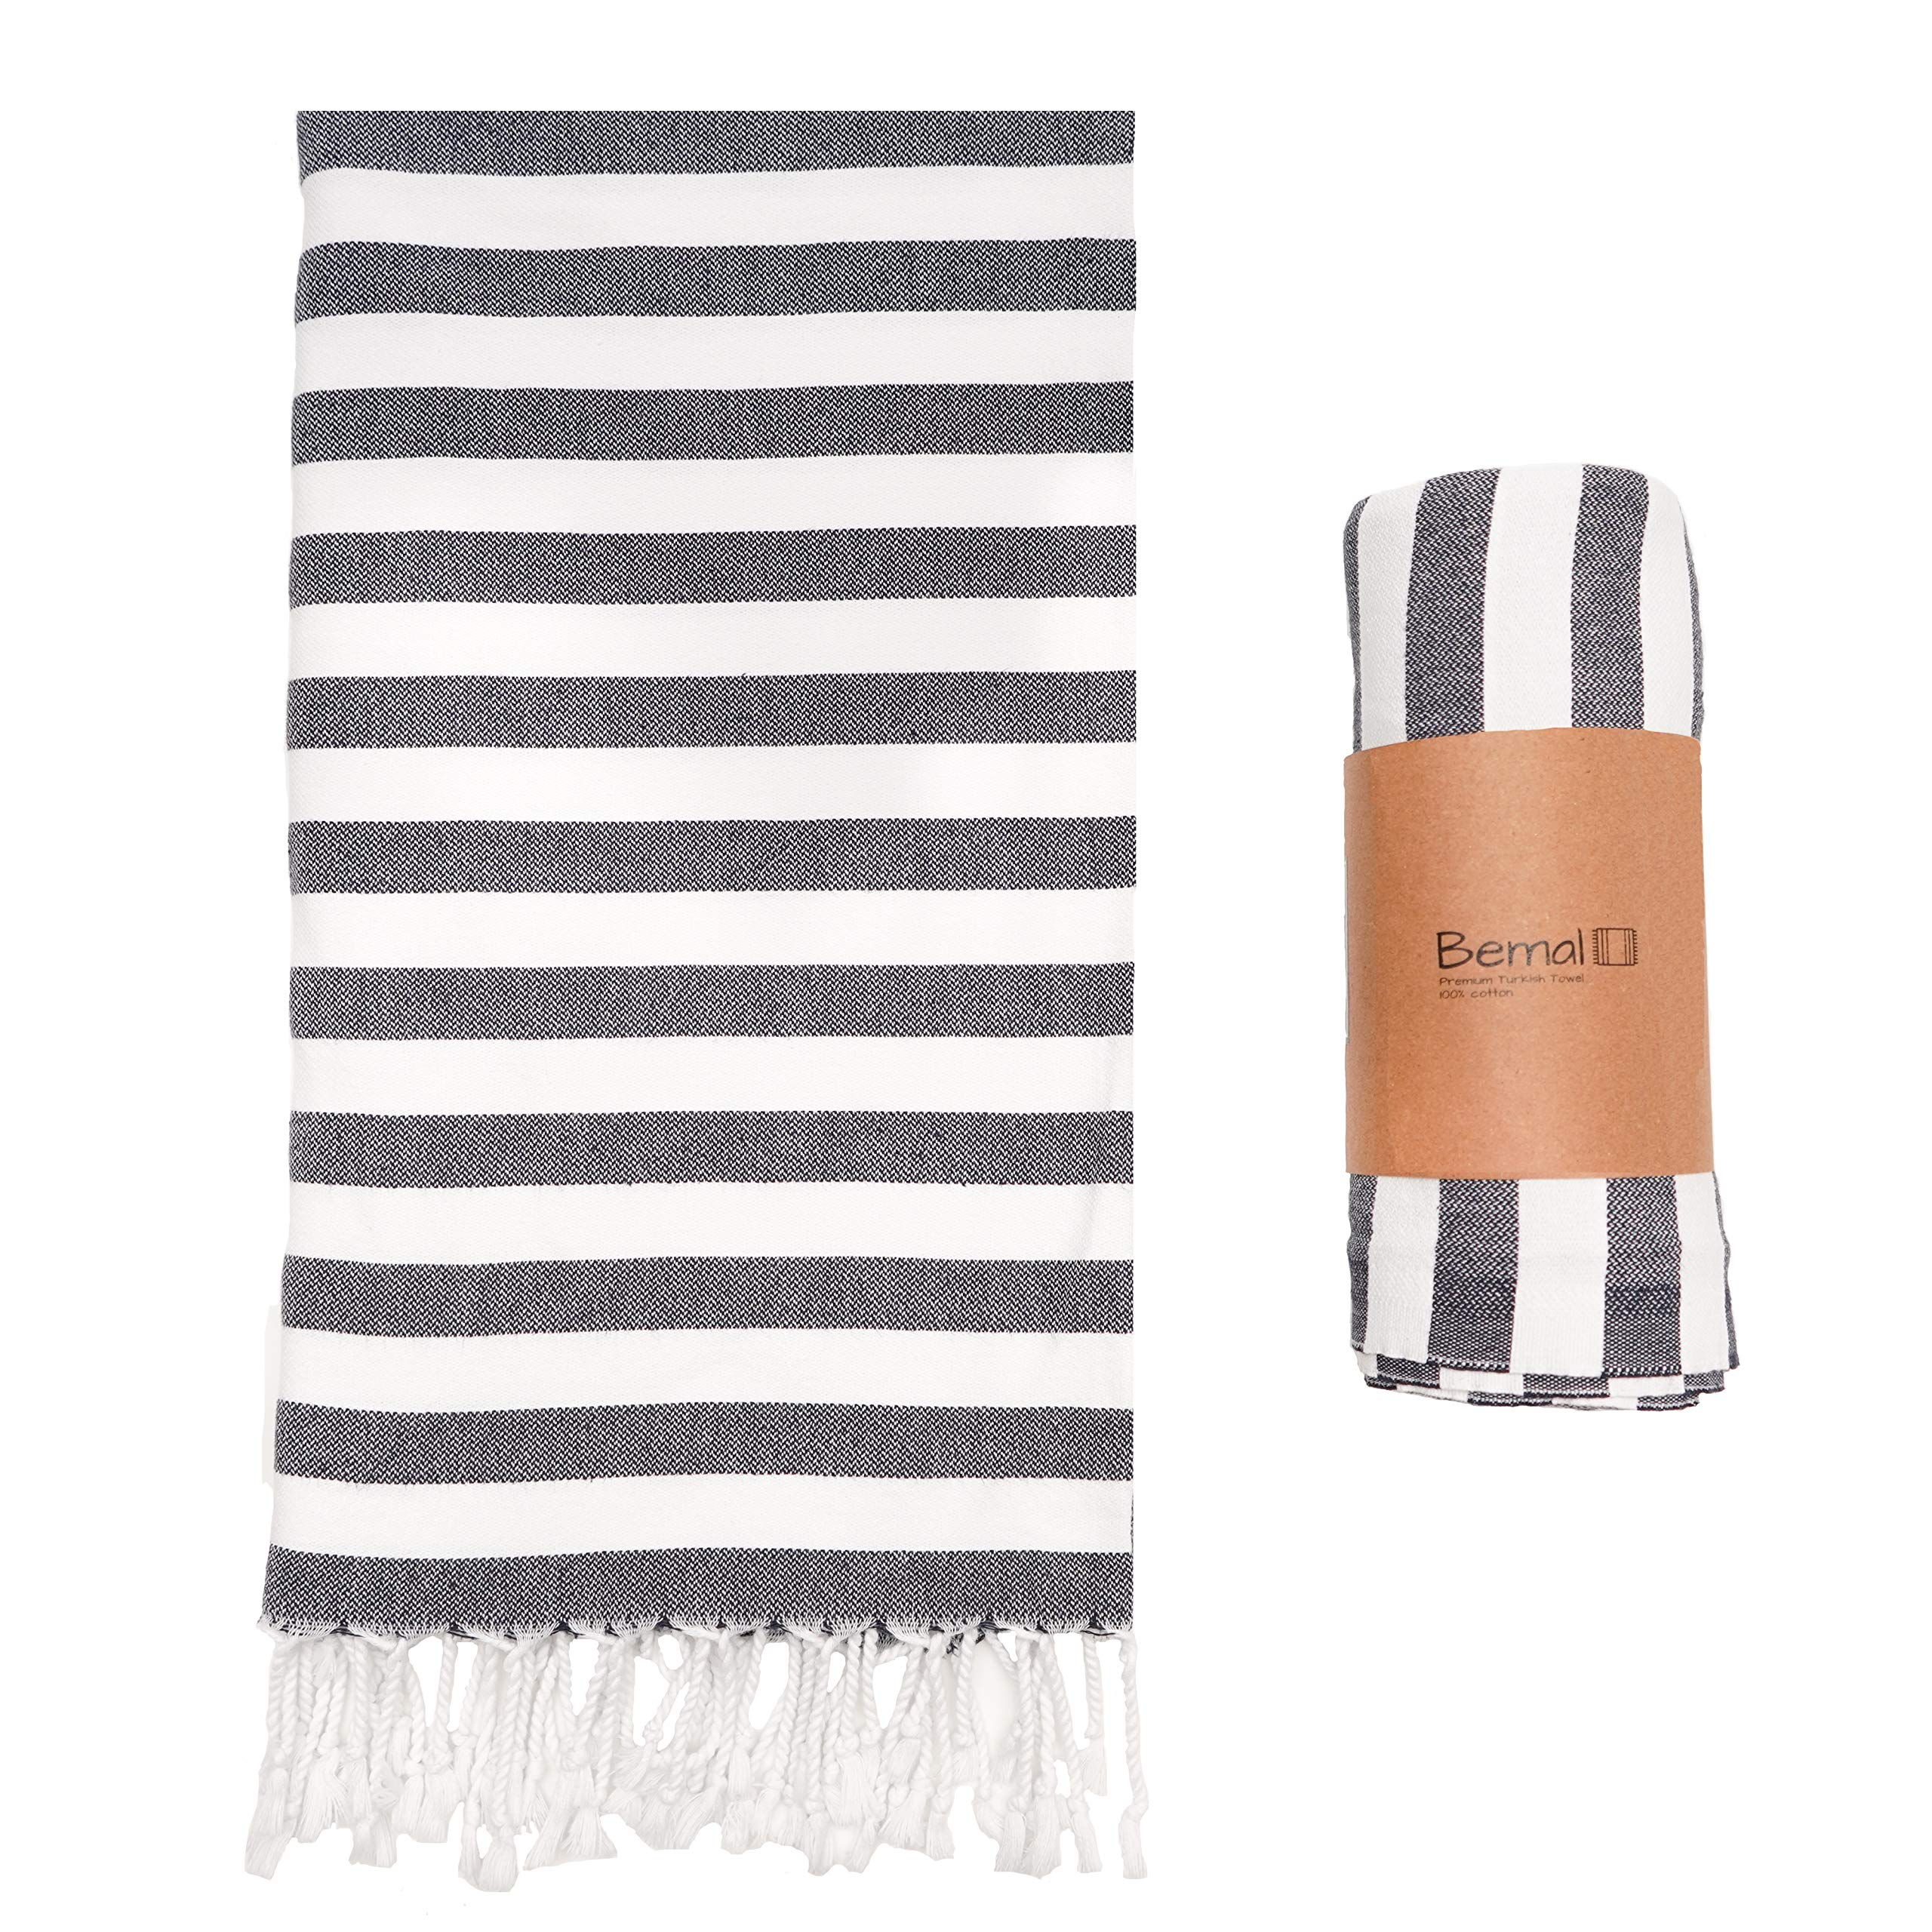 Bémal Turkish Beach Towel - Oversized 40 inches x 70 inches - Quick Dry & Compact - 100% Cotton - Suitable for Beach, Bath, Travel, Yoga, Pool (Anthracite Black, 1)